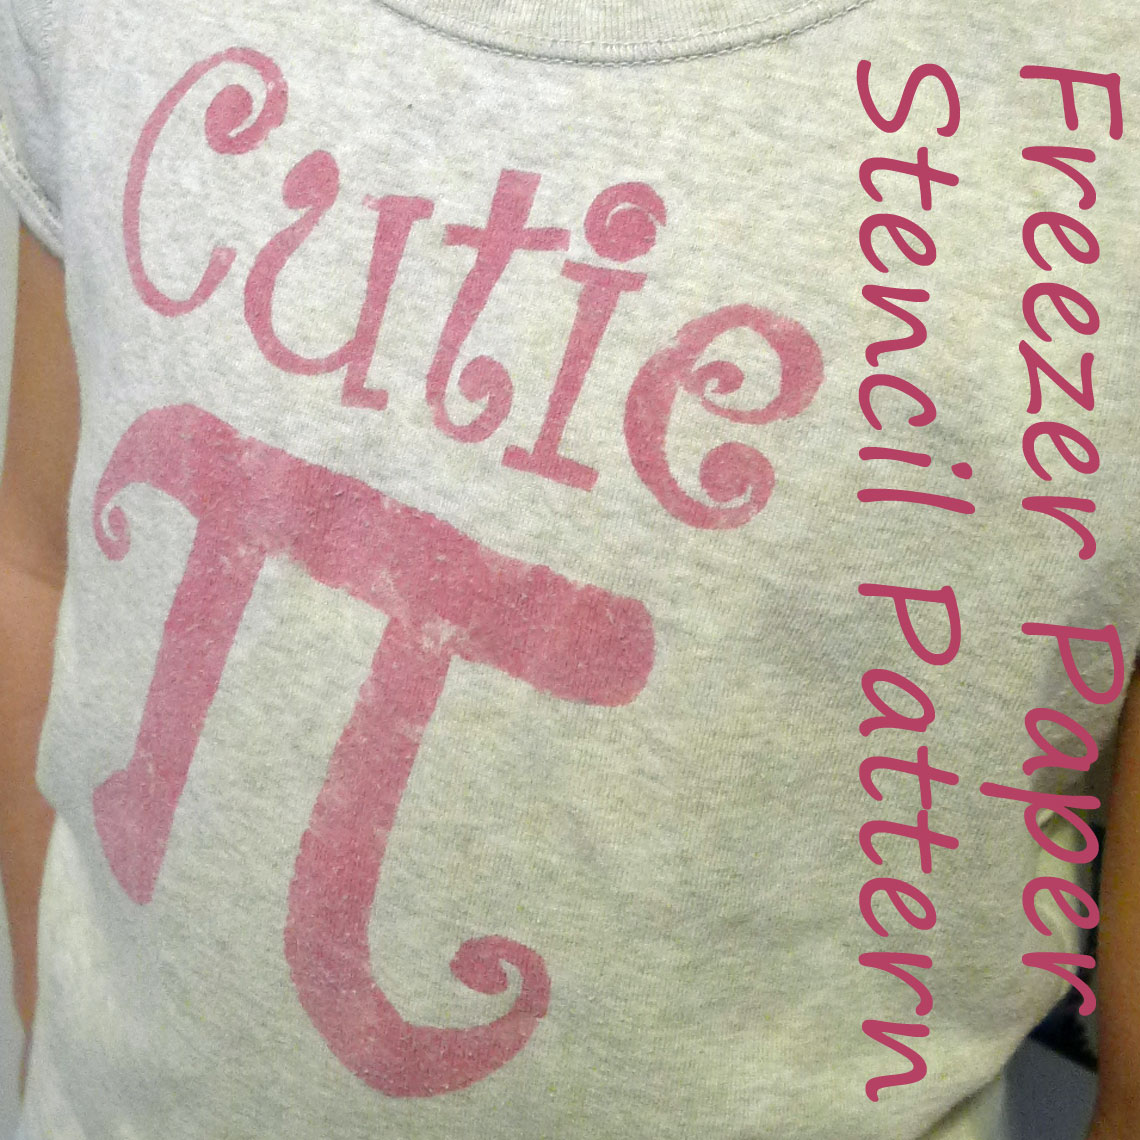 Pieces by Polly: Cutie Pi Shirt - Freezer Paper Stencil Pattern